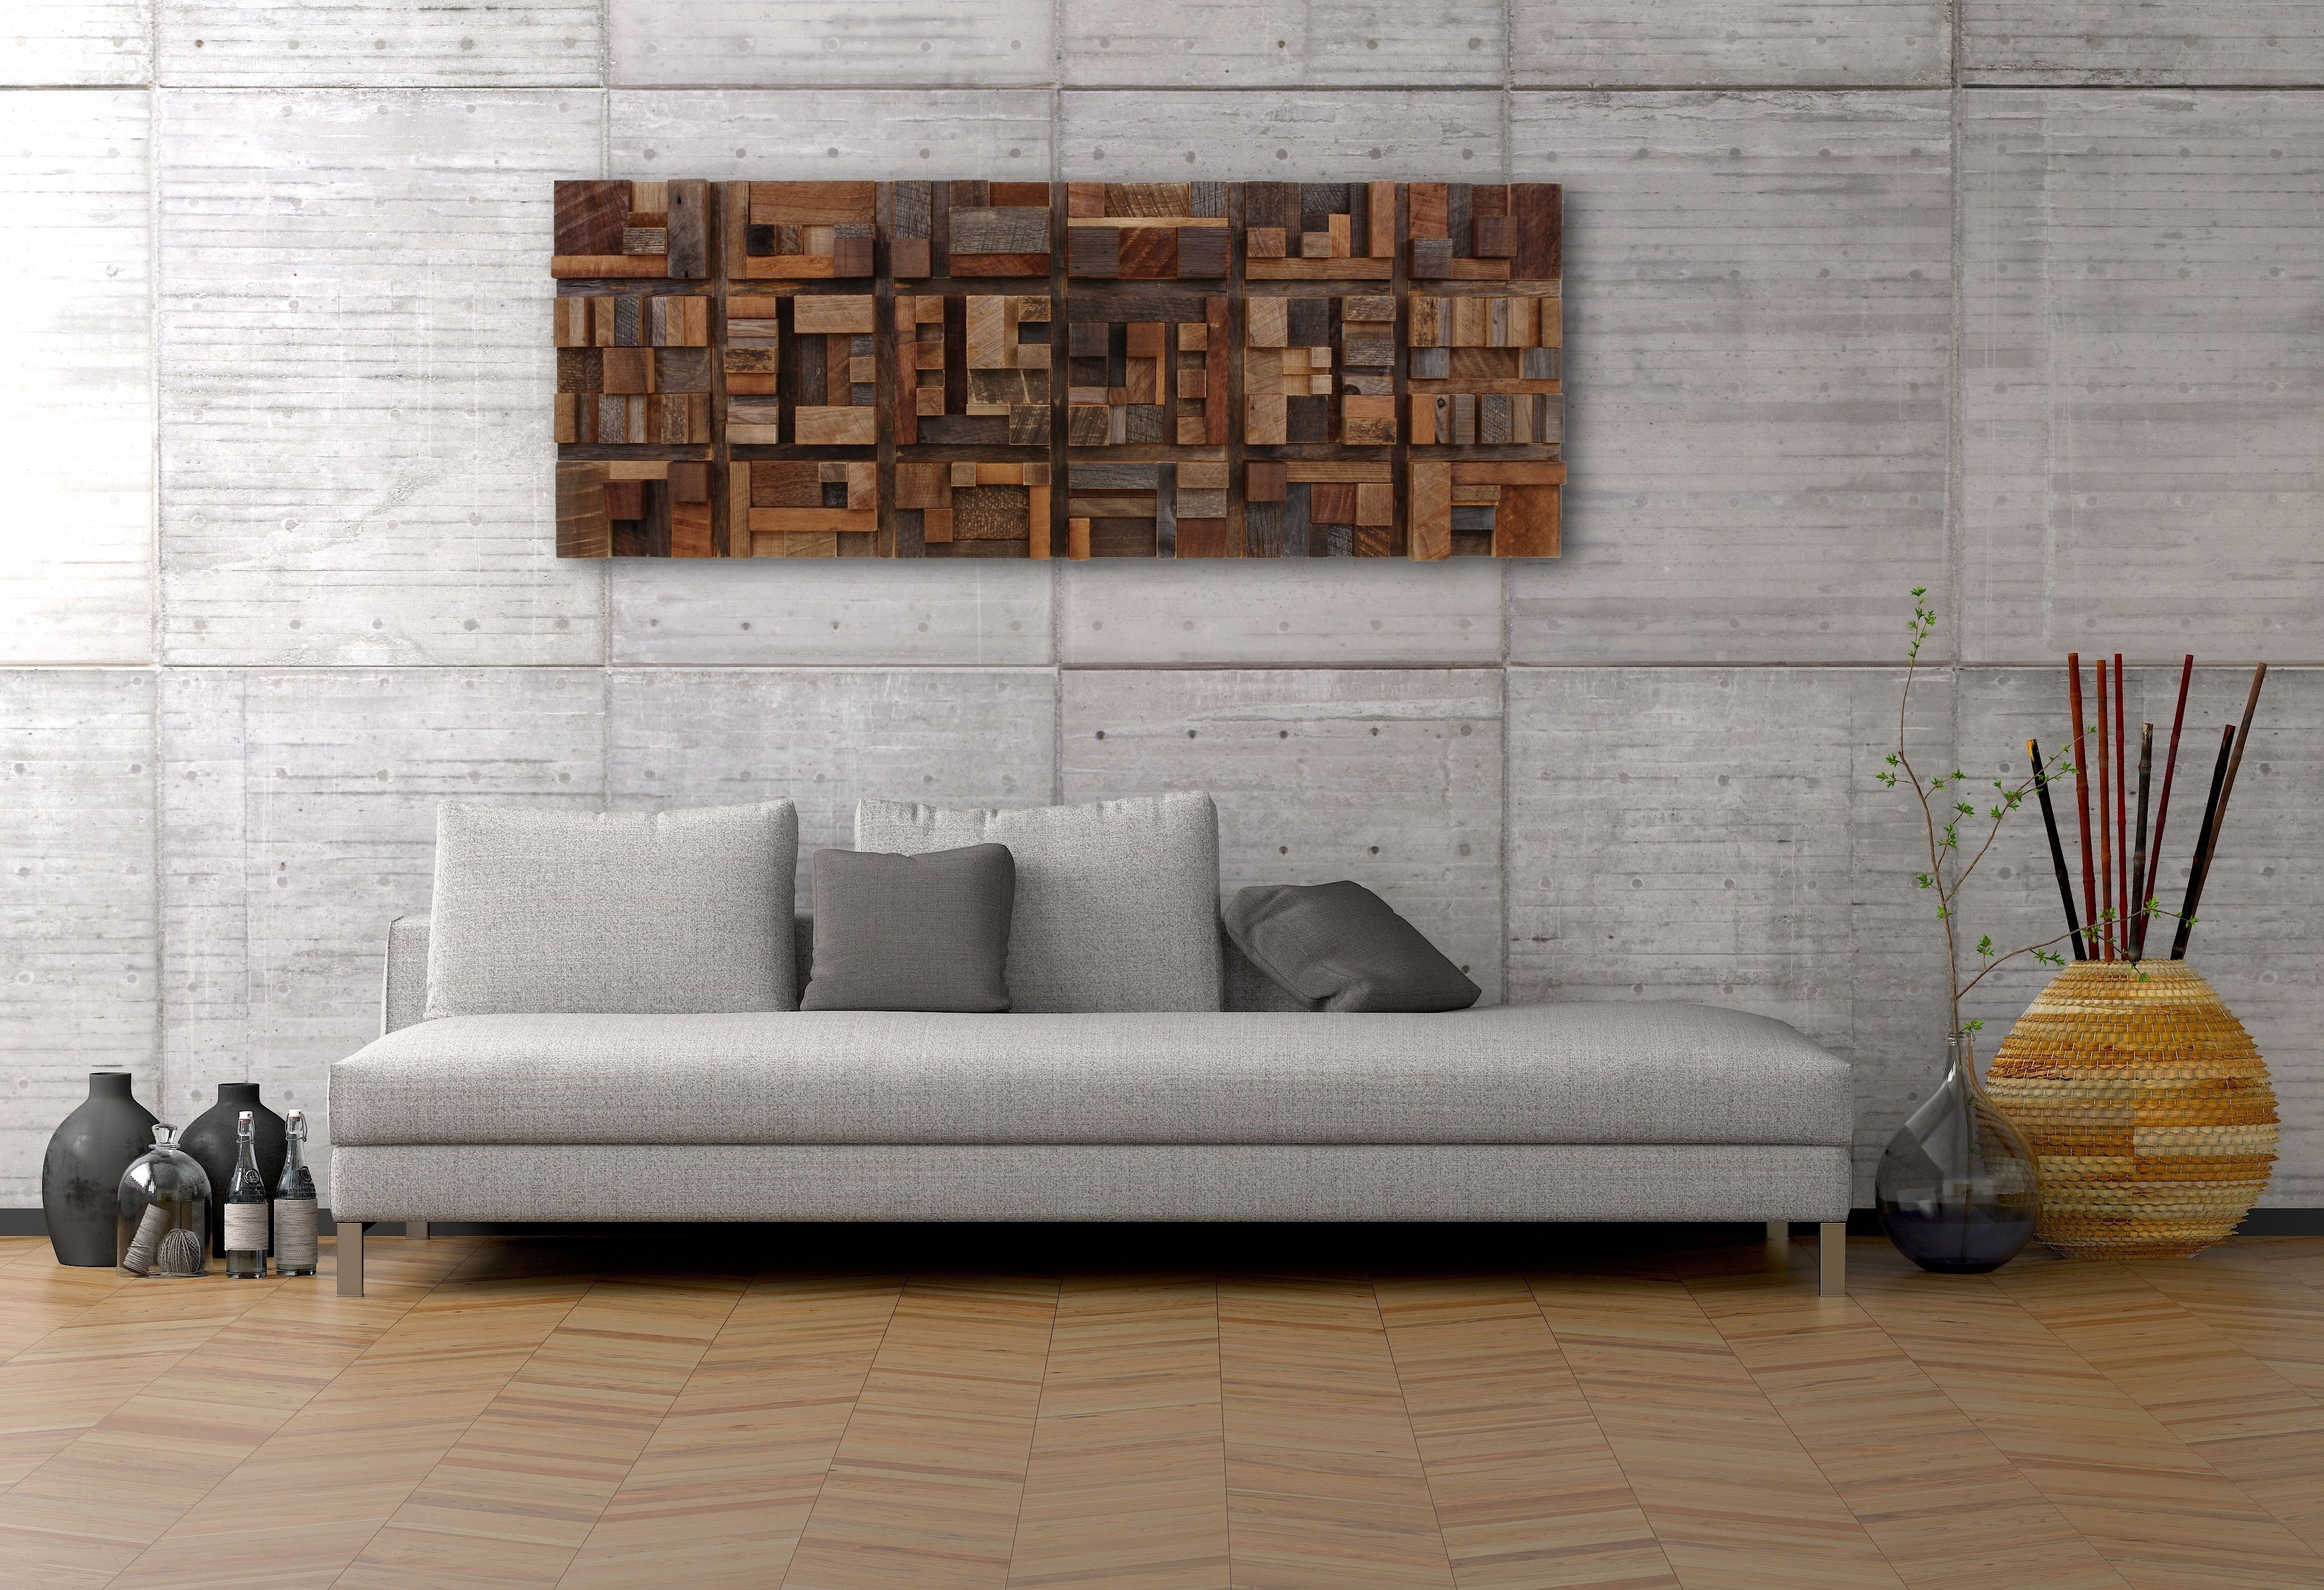 Handmade Wood Wall Art Of Geometric Shapes, Reclaimed Barnwood Inside Newest Personalized Wood Wall Art (View 6 of 15)